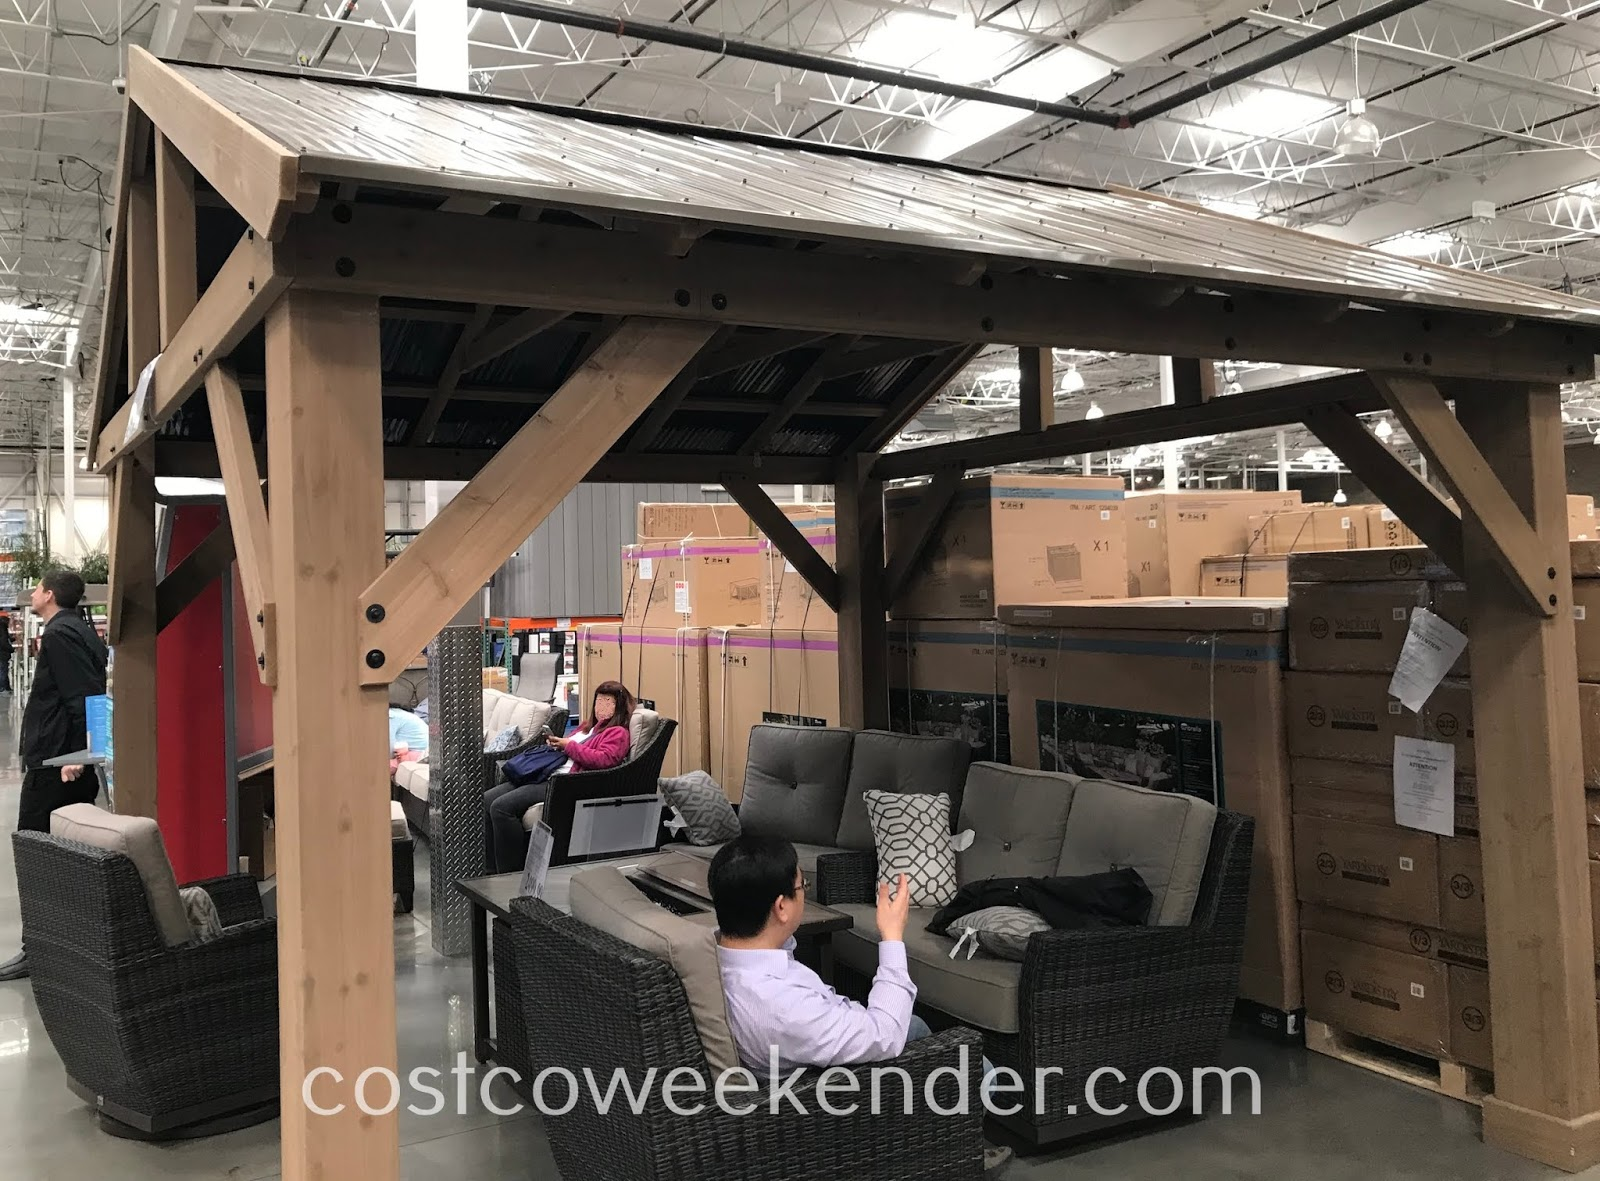 Enjoy being outside in your backyard while getting some shade under the Yardistry Cedar Wood Pavilion